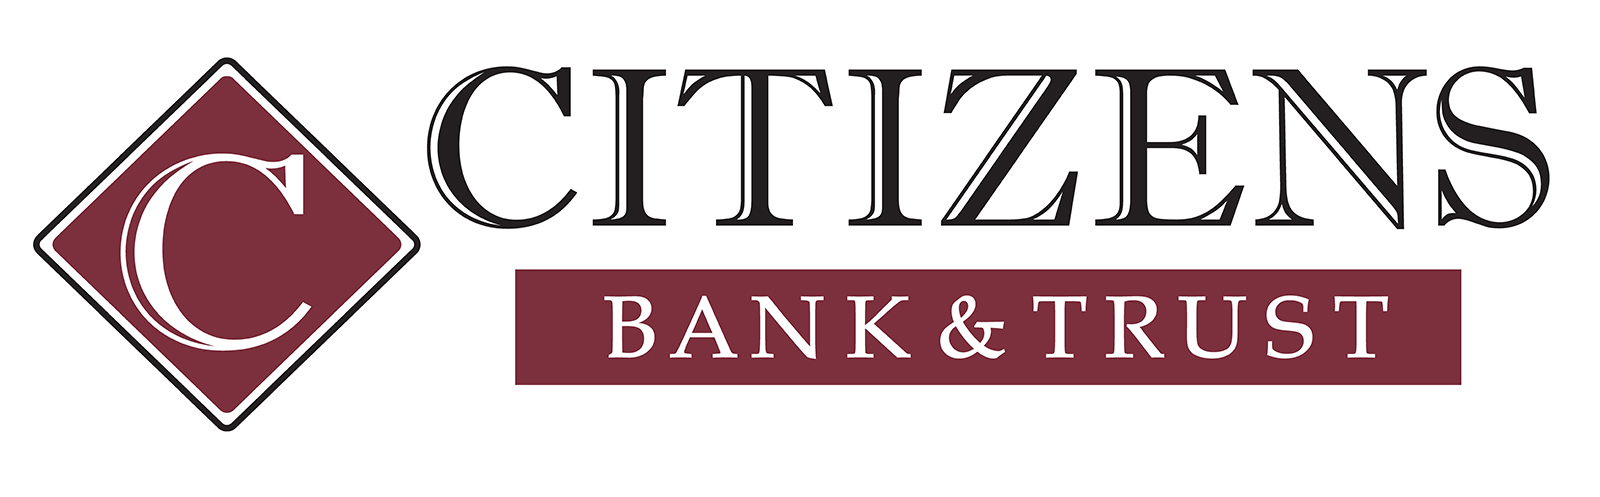 Gold - Citizens Bank & Trust - Logo